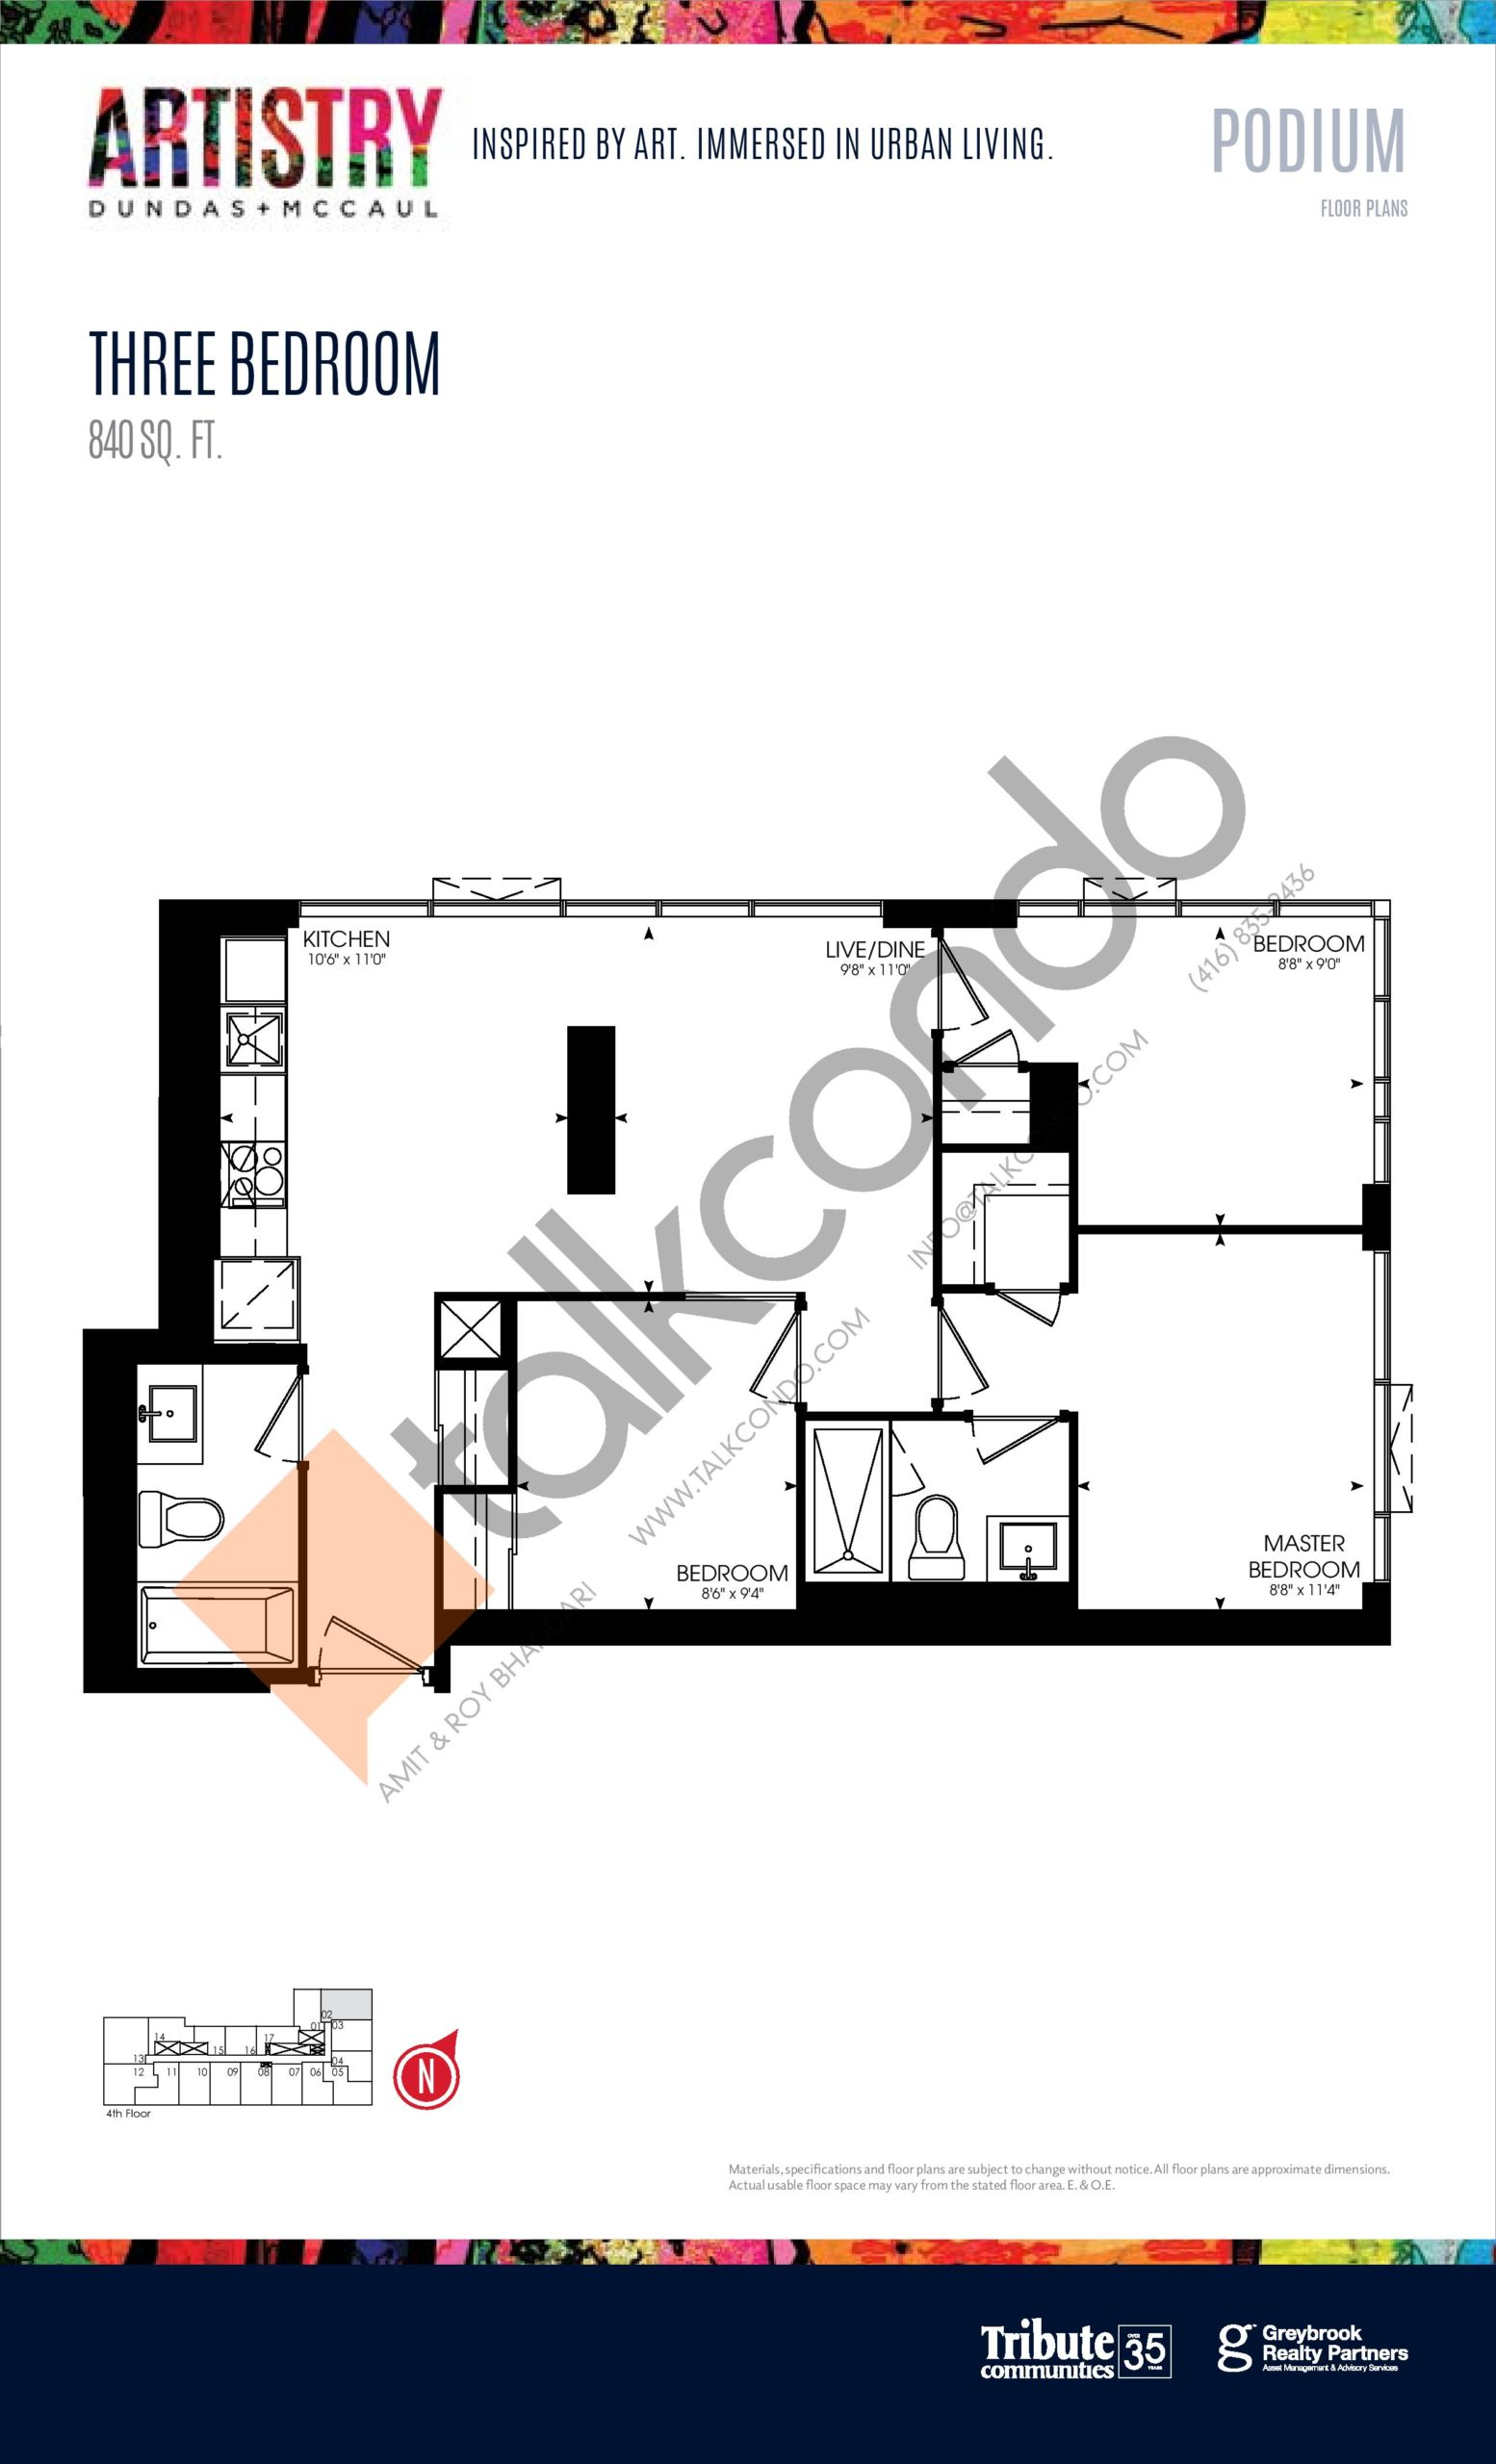 840 sq. ft. - Podium Floor Plan at Artistry Condos - 840 sq.ft